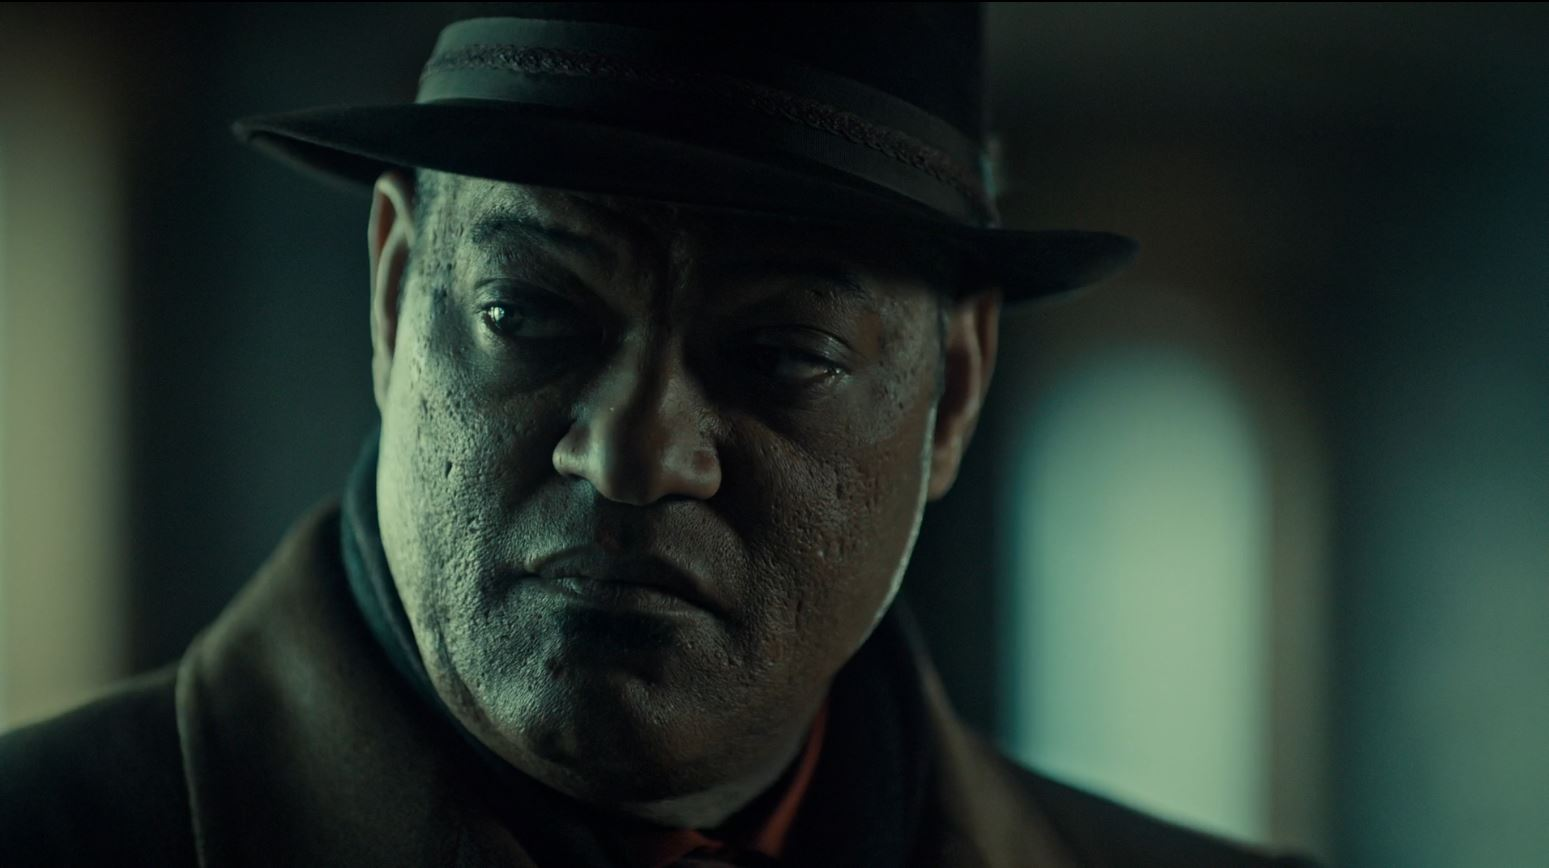 Hannibal Season 2 Episode 8 Su-zakana - Jack Crawford (Laurence Fishburne)